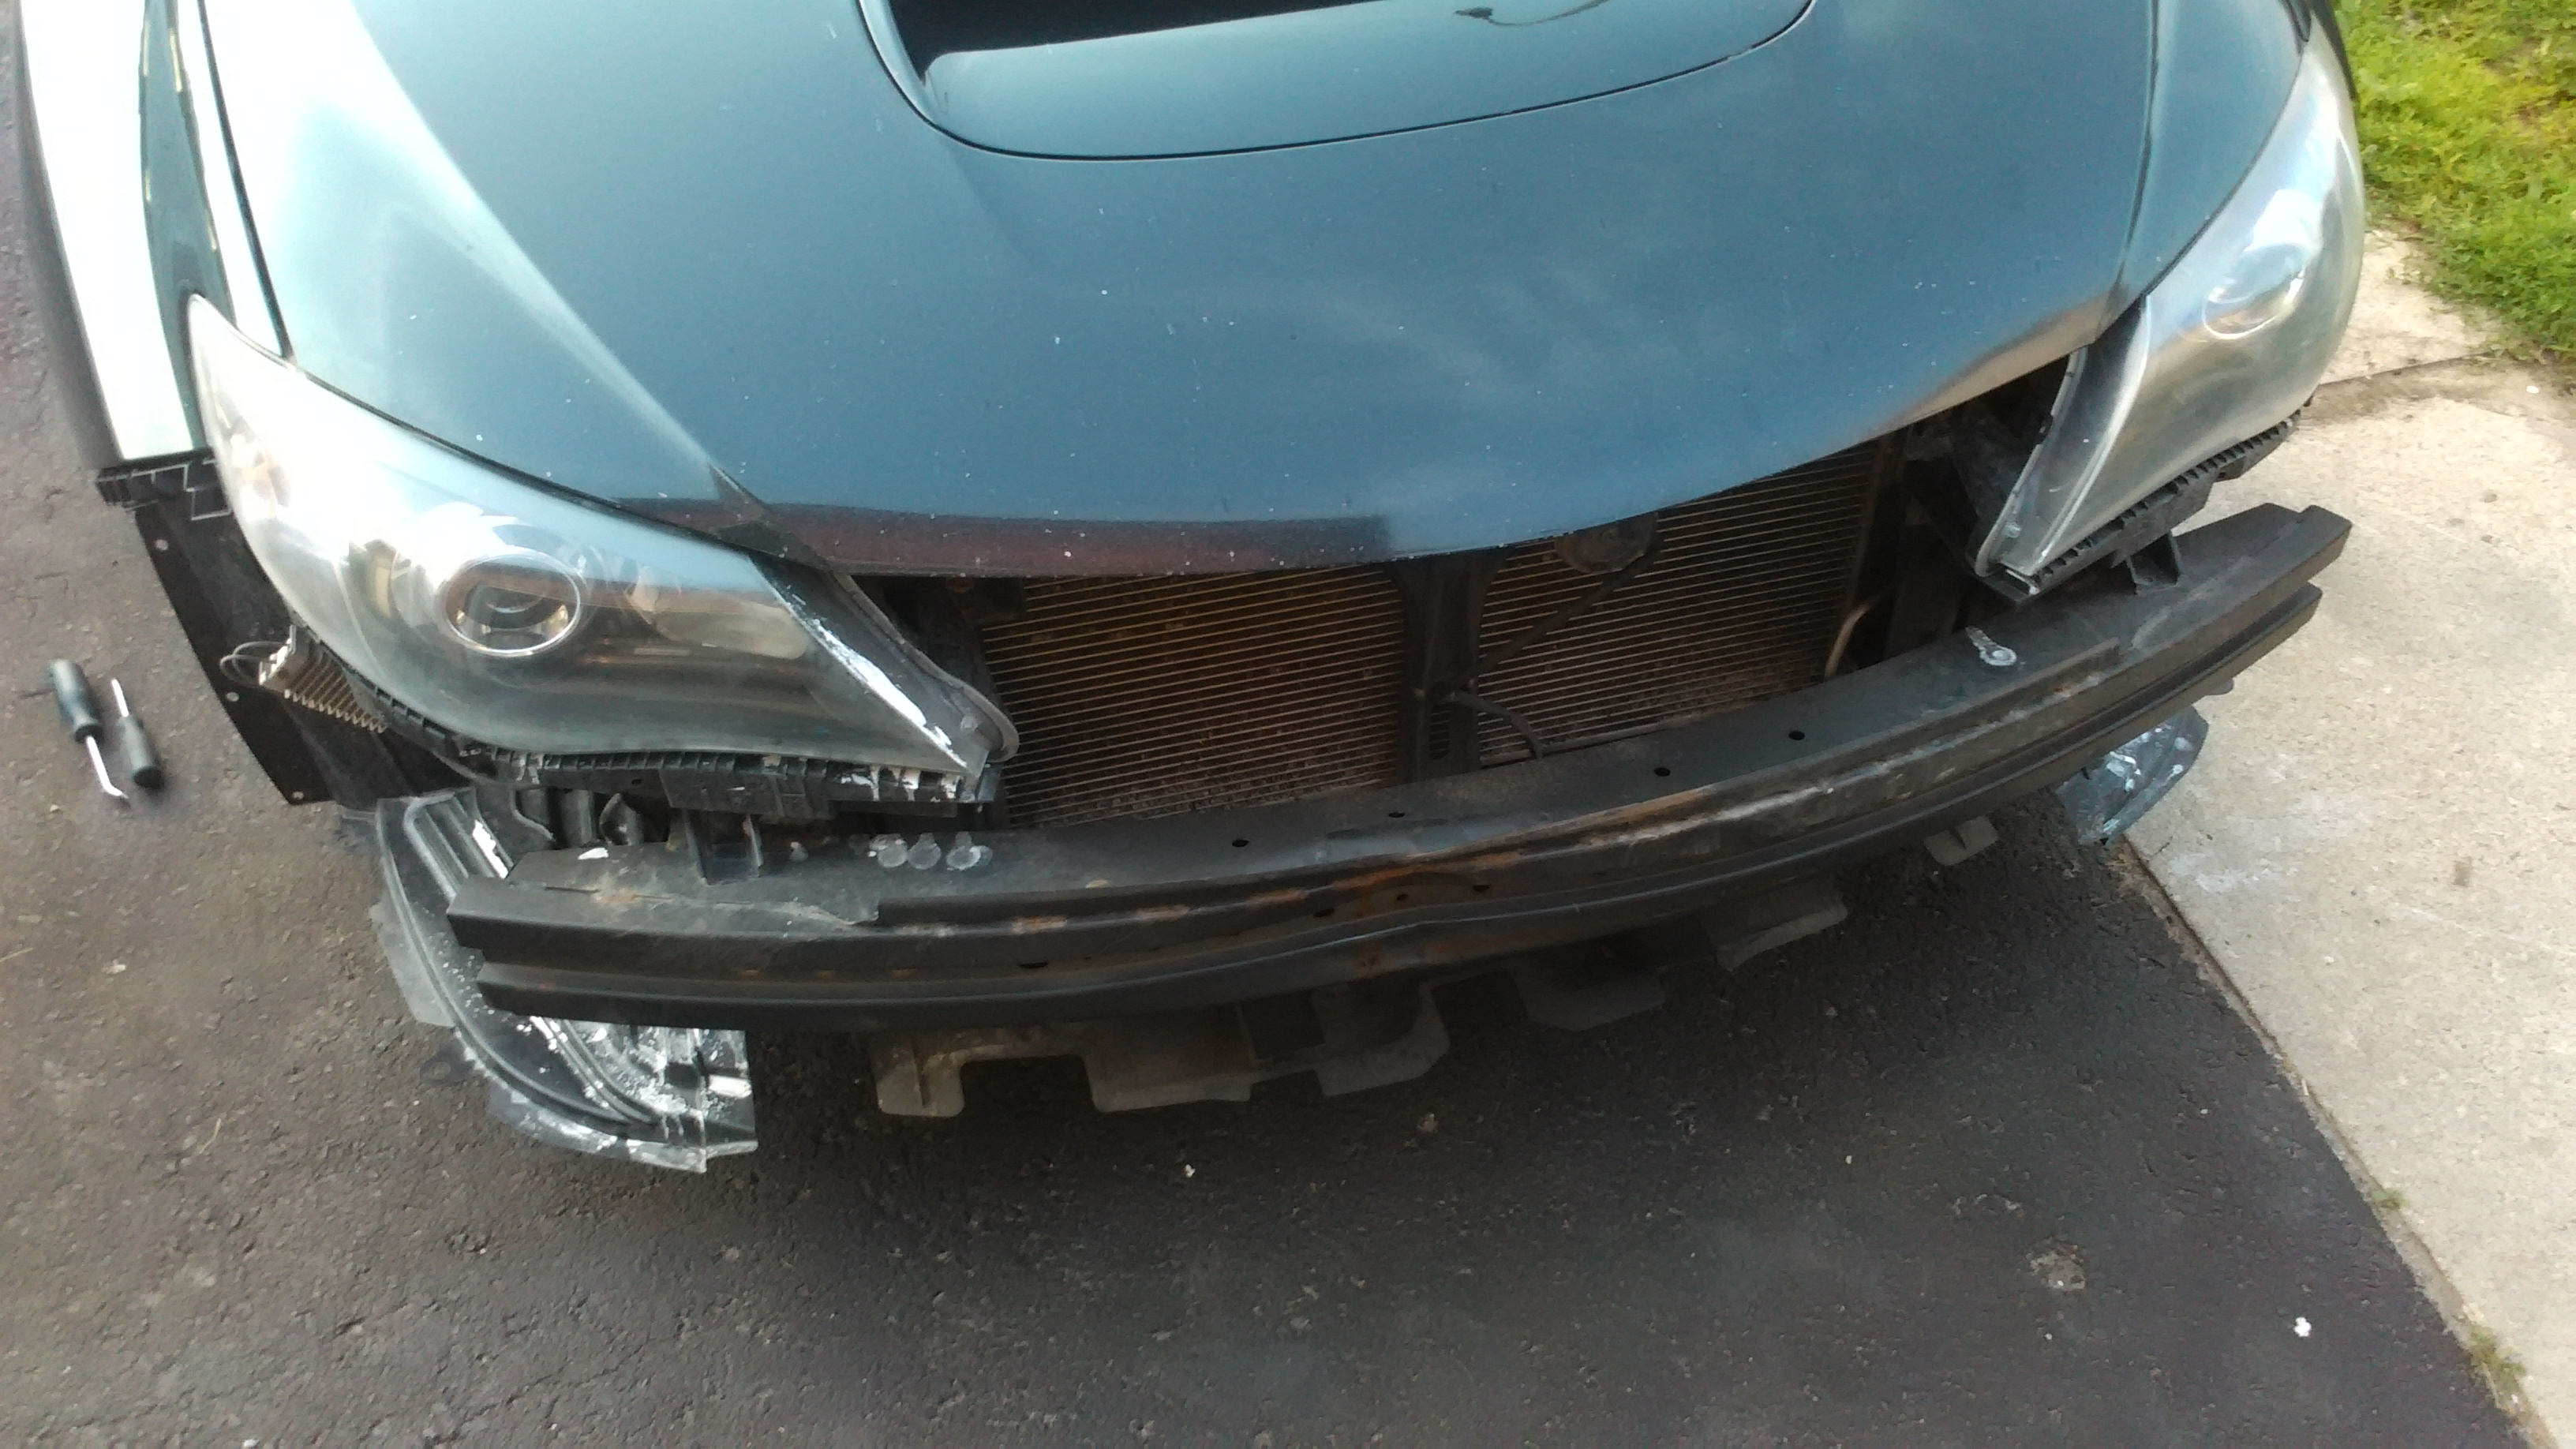 I took my front bumper cover off, to see why the bumper was